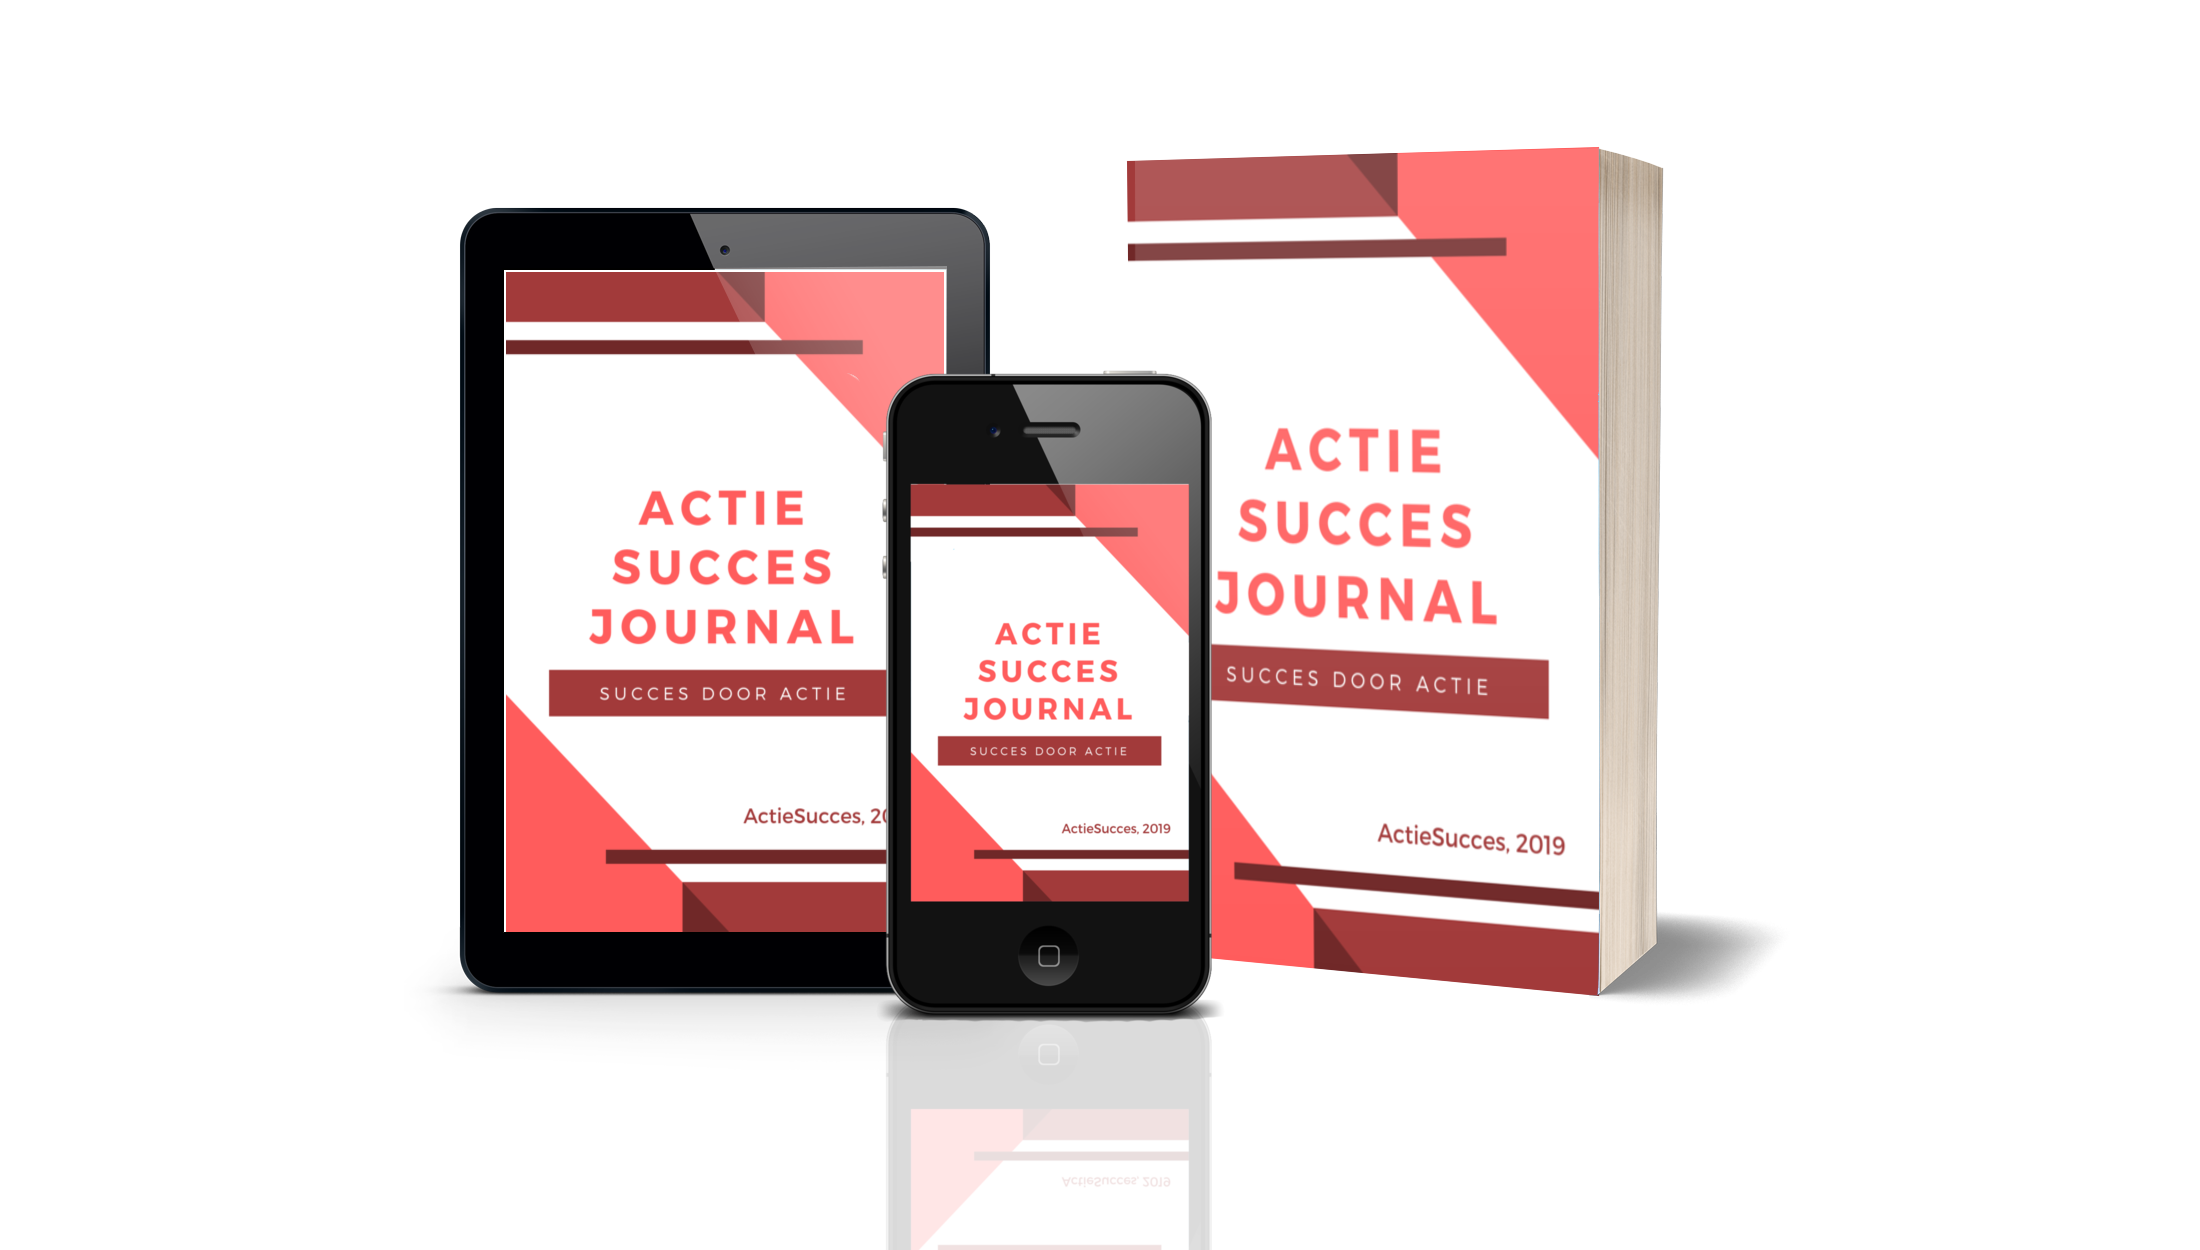 ActieSucces Journal composititie